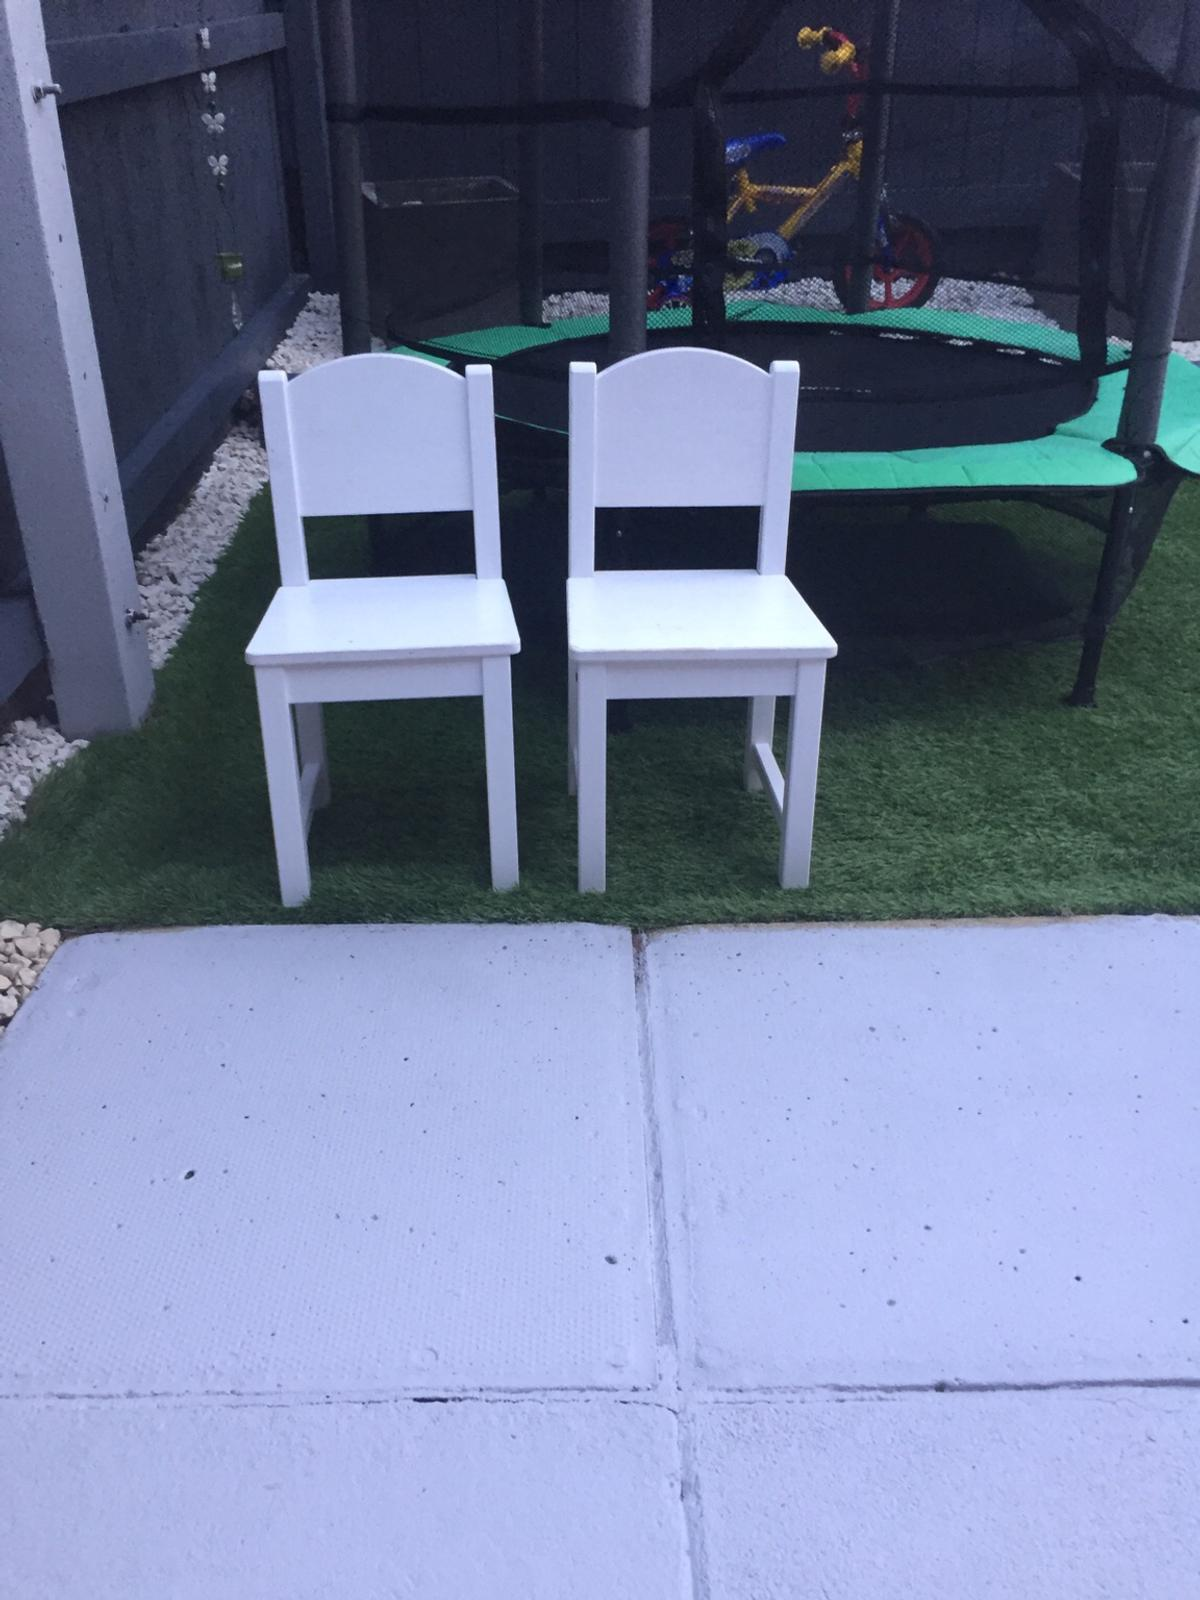 2 kids white wooden chairs , nice condition , lovely for garden or indoors , can deliver locally for small fee to cover petrol costs or pick up free